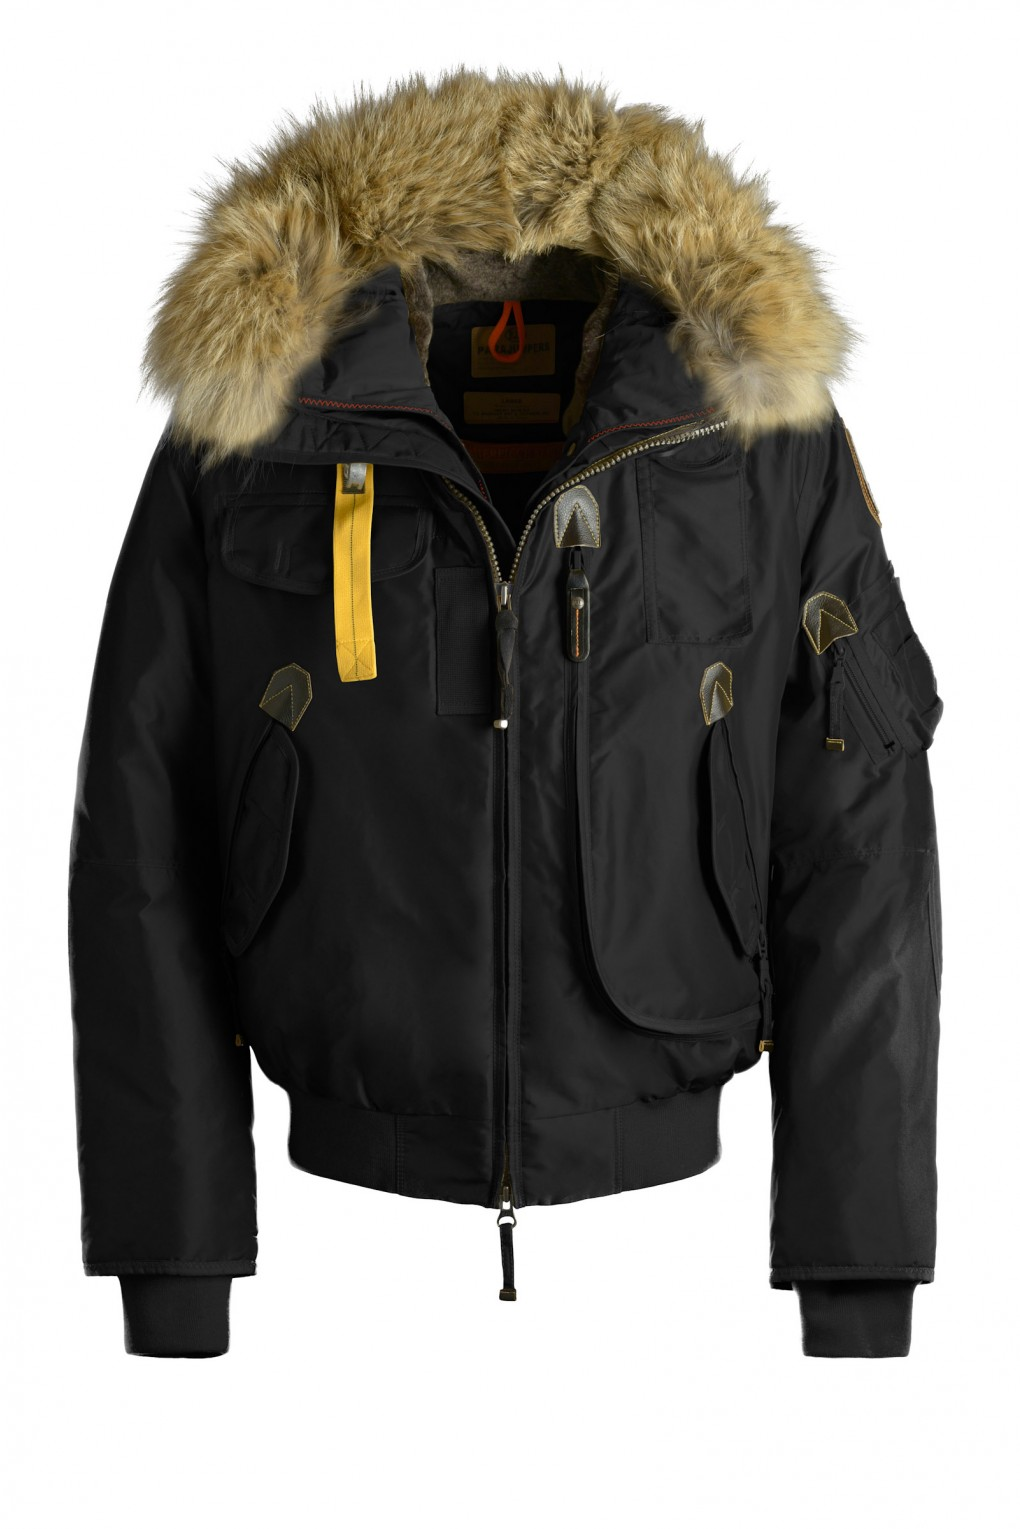 parajumpers GOBI man outerwear Black